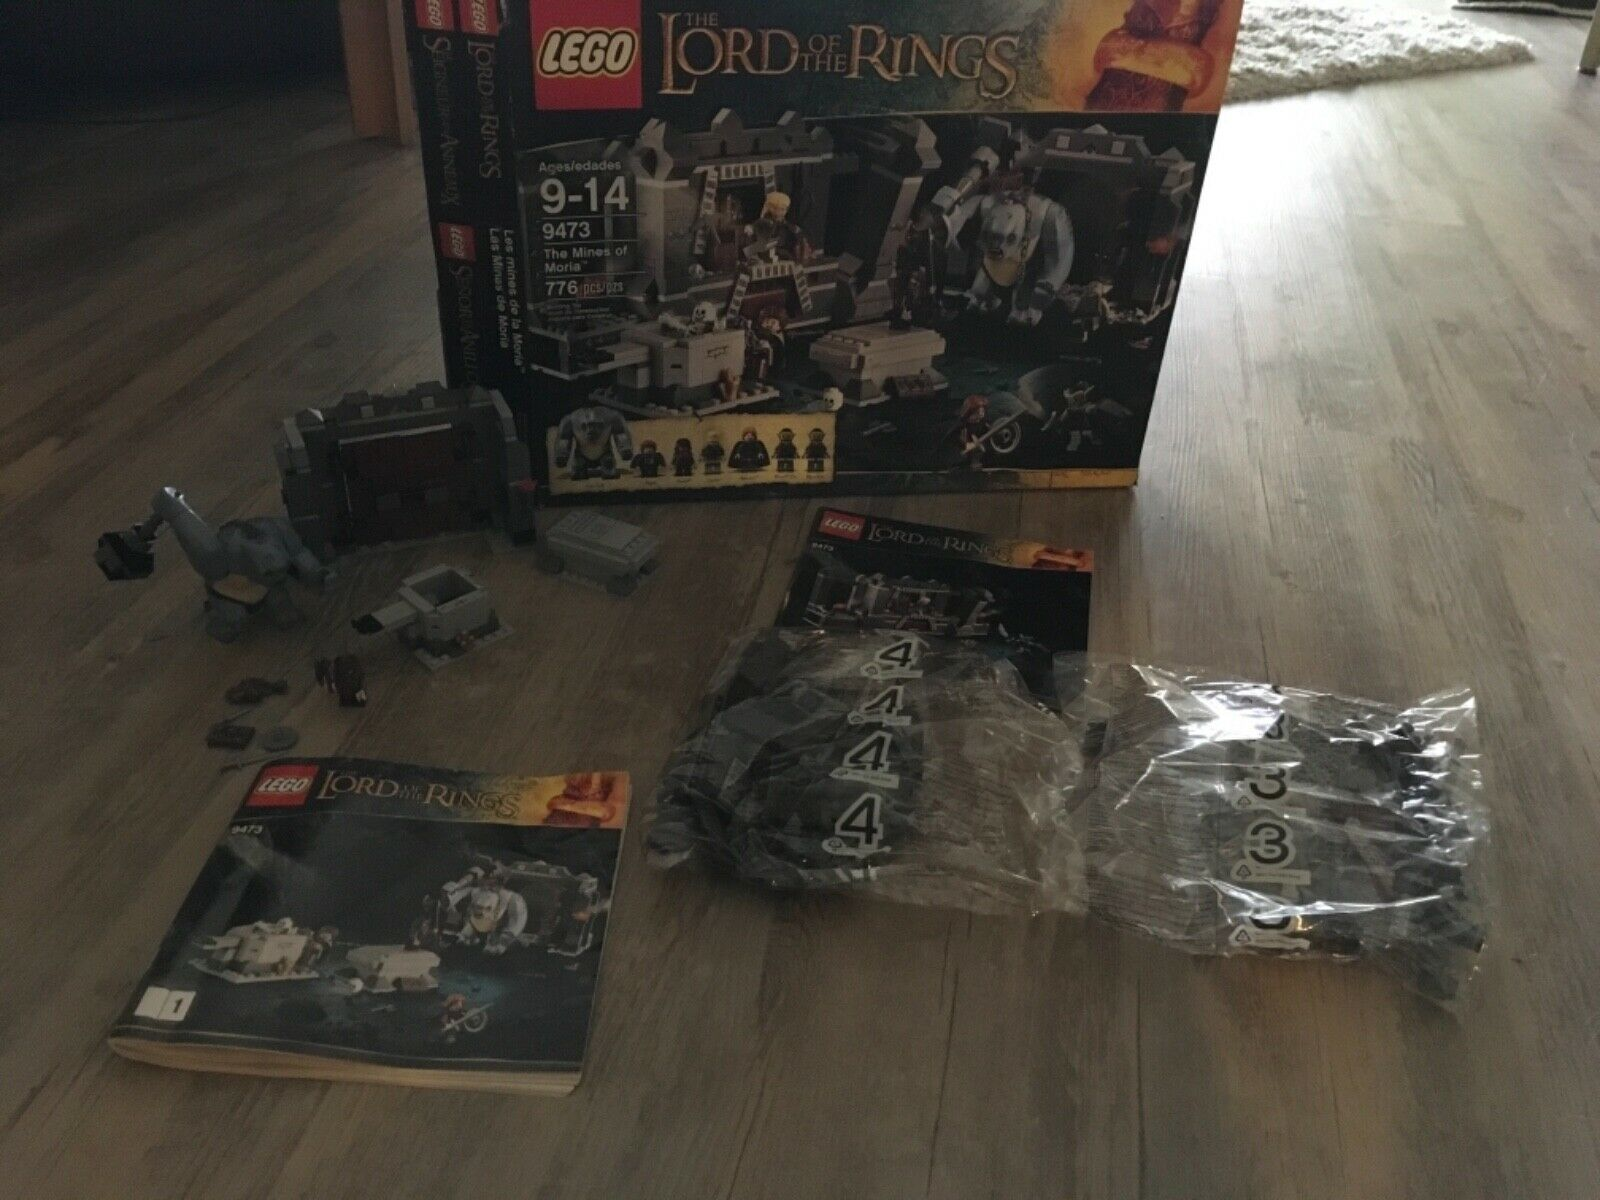 LEGO Lord of the Rings The Mines of Moria (9473)